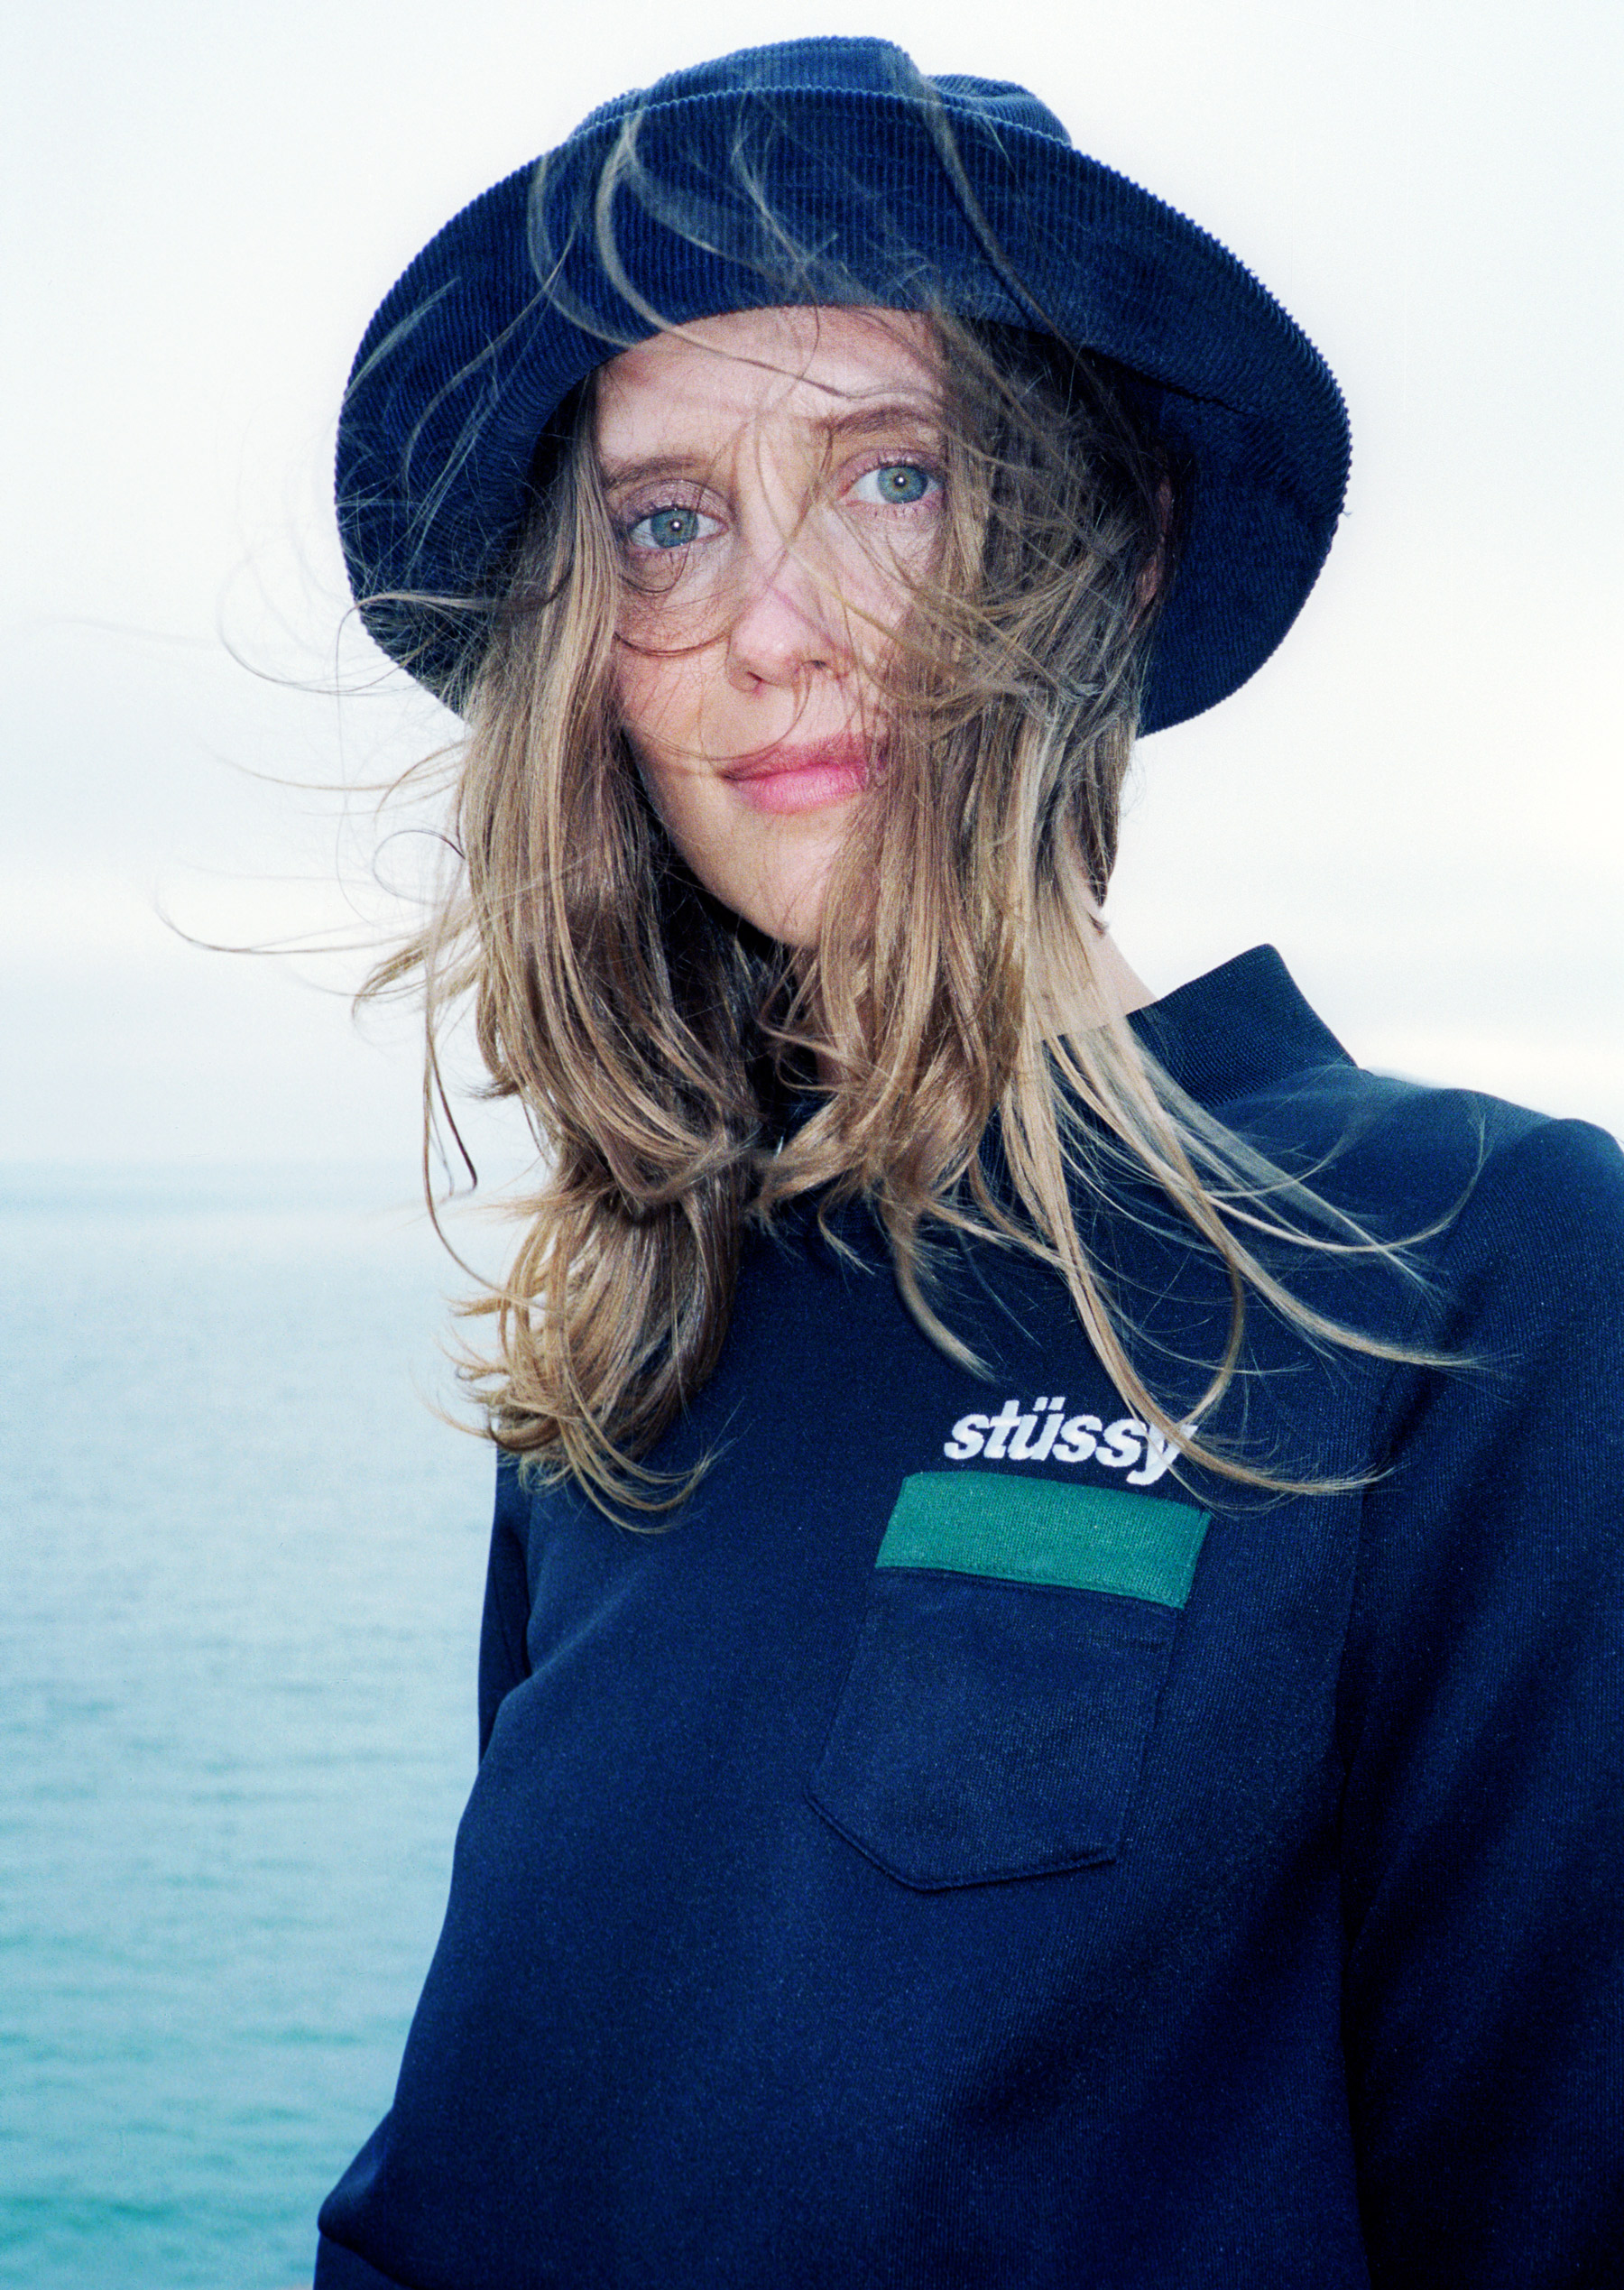 Extra_Stussy_for_your_consideration_2.jpg